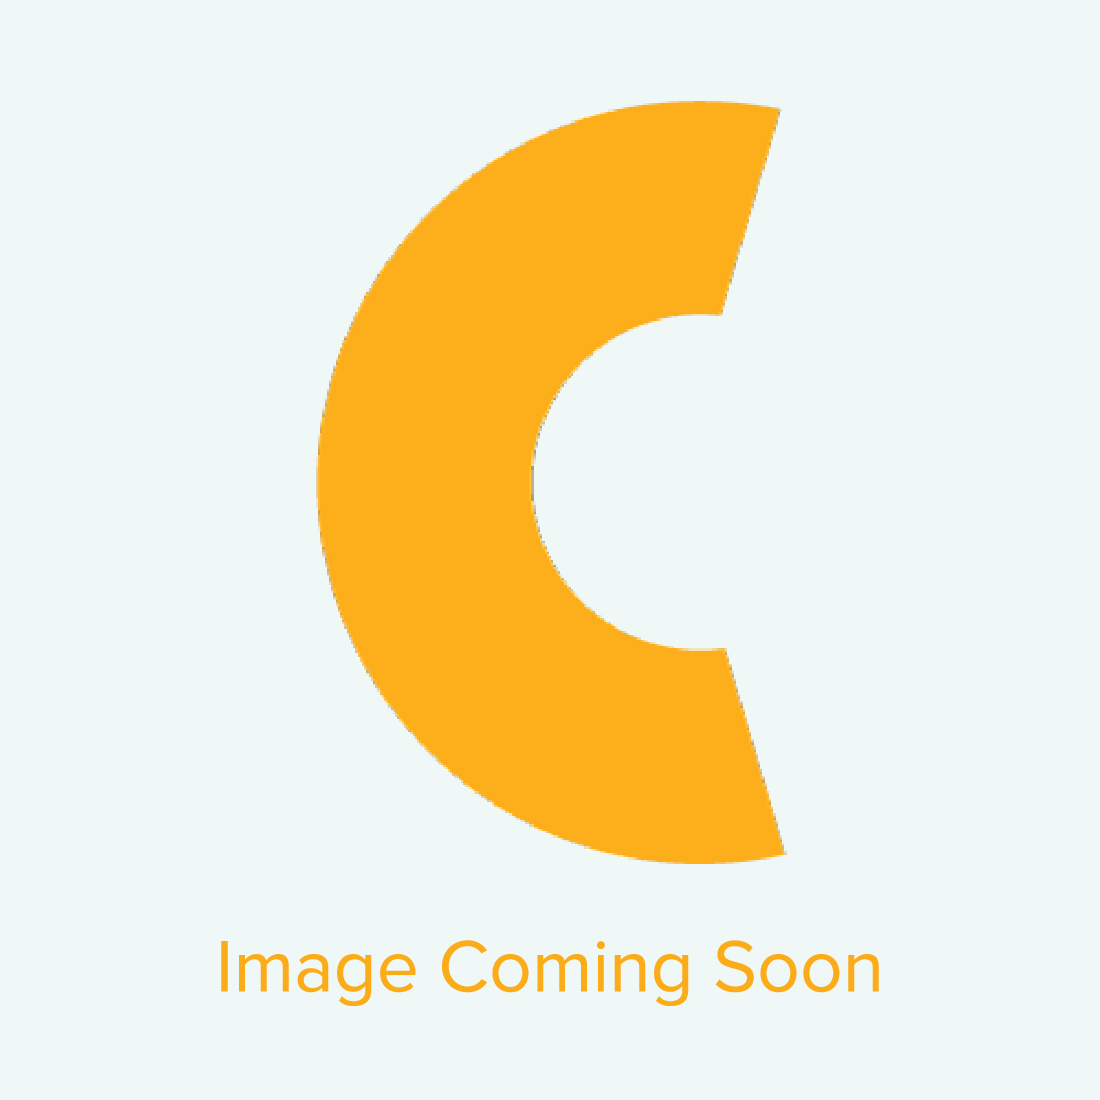 Sawgrass SG400 & Heat Press Beginner Kit